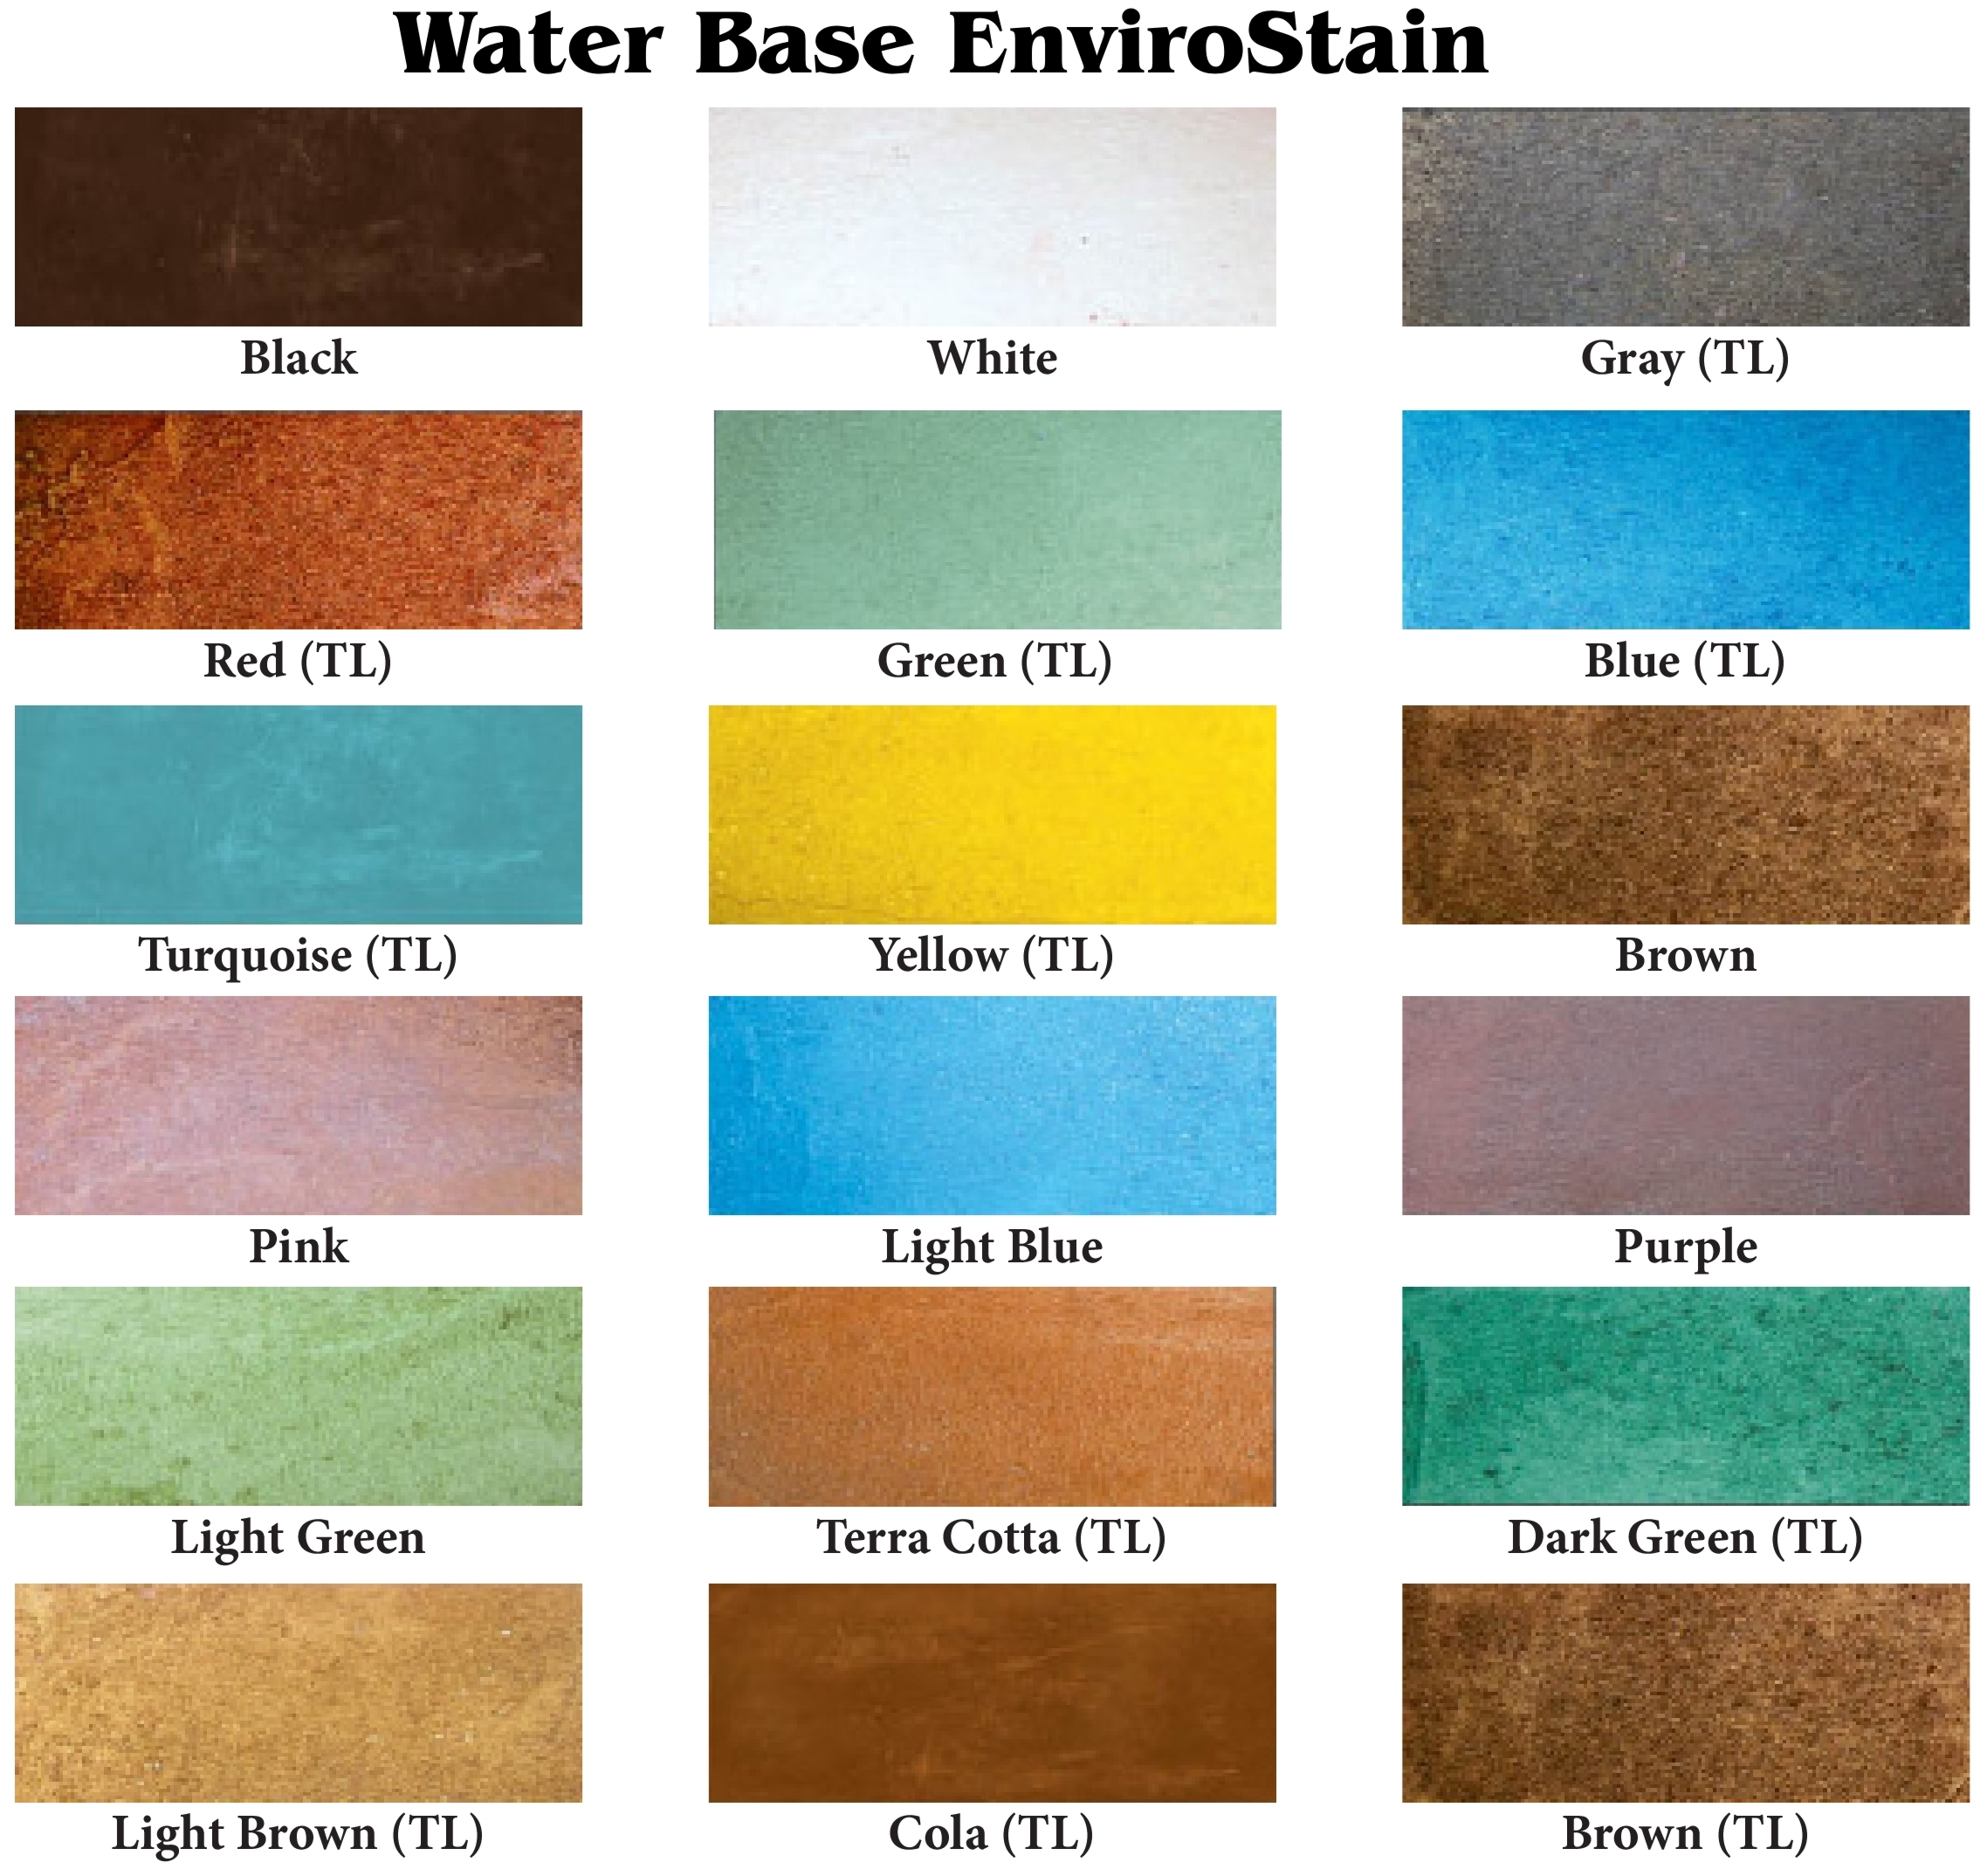 Waterbase EnviroStain